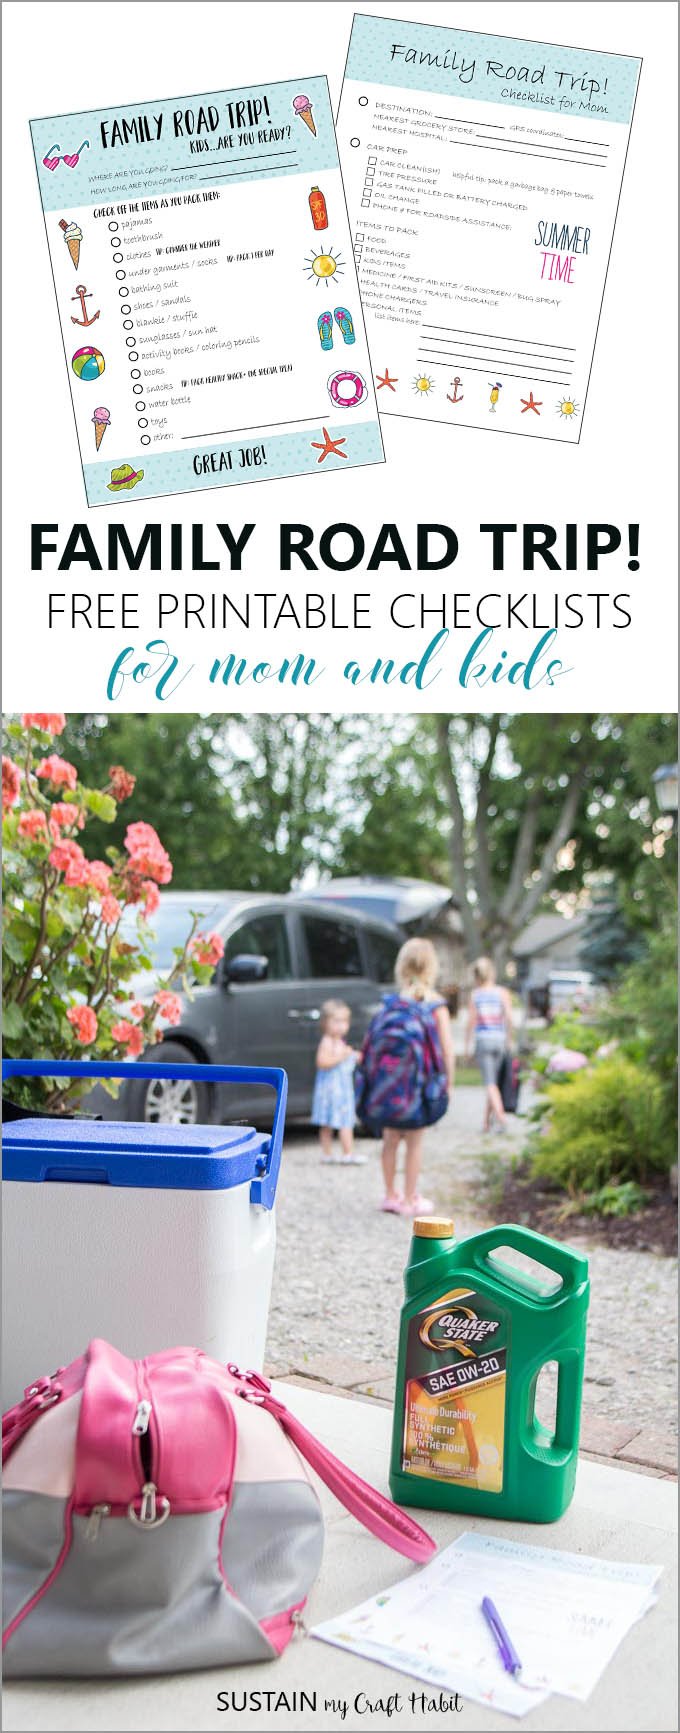 Family road trip tips including printable planning checklists for moms and kids!